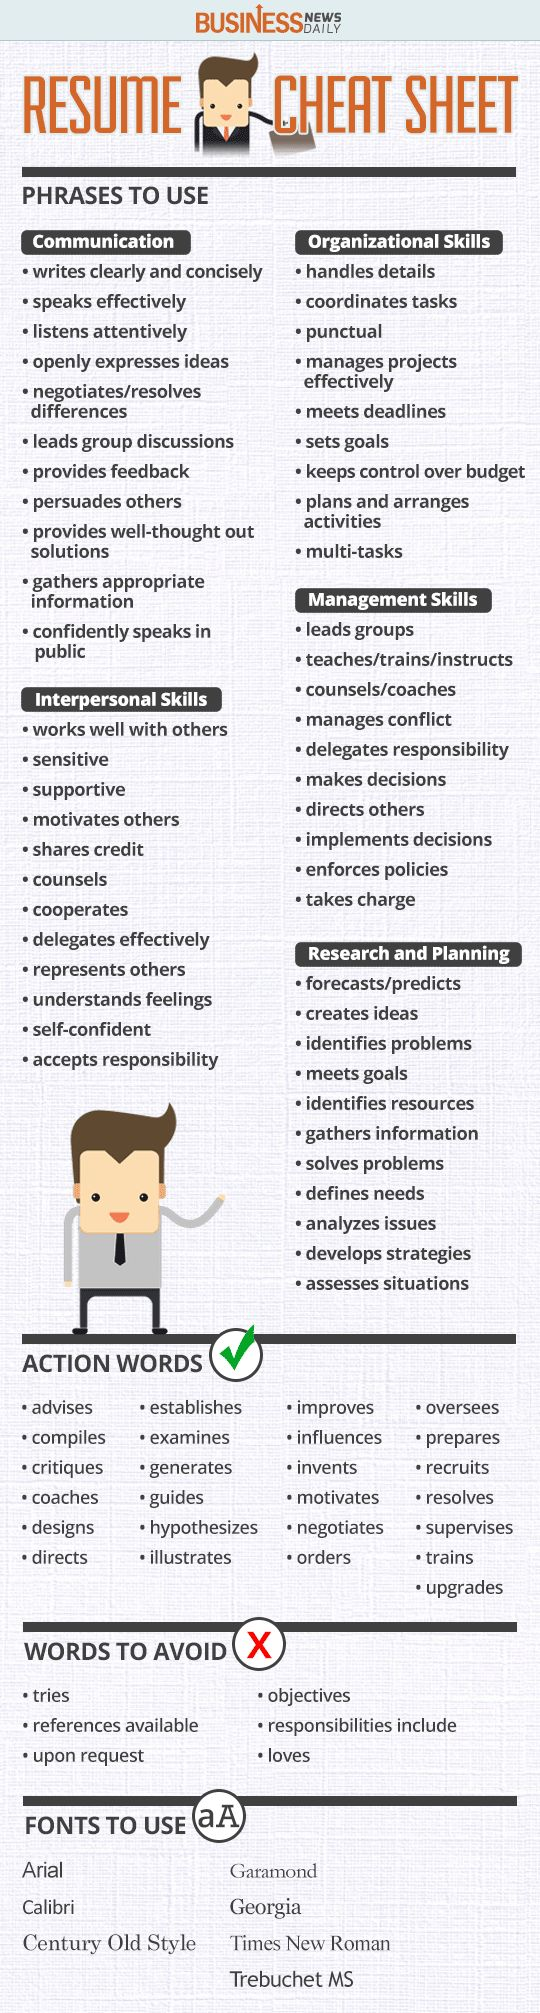 Opposenewapstandardsus  Prepossessing  Ideas About Resume On Pinterest  Cv Format Resume Cv And  With Lovely Resume Cheat Sheet Infographic Andrews Almost Done With A Complete Unit On Employment Which With Lovely Editable Resume Template Also Case Manager Resume Objective In Addition Objective For Resume For Customer Service And Updated Resume Format As Well As Writing Objectives For Resume Additionally Maintenance Resumes From Pinterestcom With Opposenewapstandardsus  Lovely  Ideas About Resume On Pinterest  Cv Format Resume Cv And  With Lovely Resume Cheat Sheet Infographic Andrews Almost Done With A Complete Unit On Employment Which And Prepossessing Editable Resume Template Also Case Manager Resume Objective In Addition Objective For Resume For Customer Service From Pinterestcom